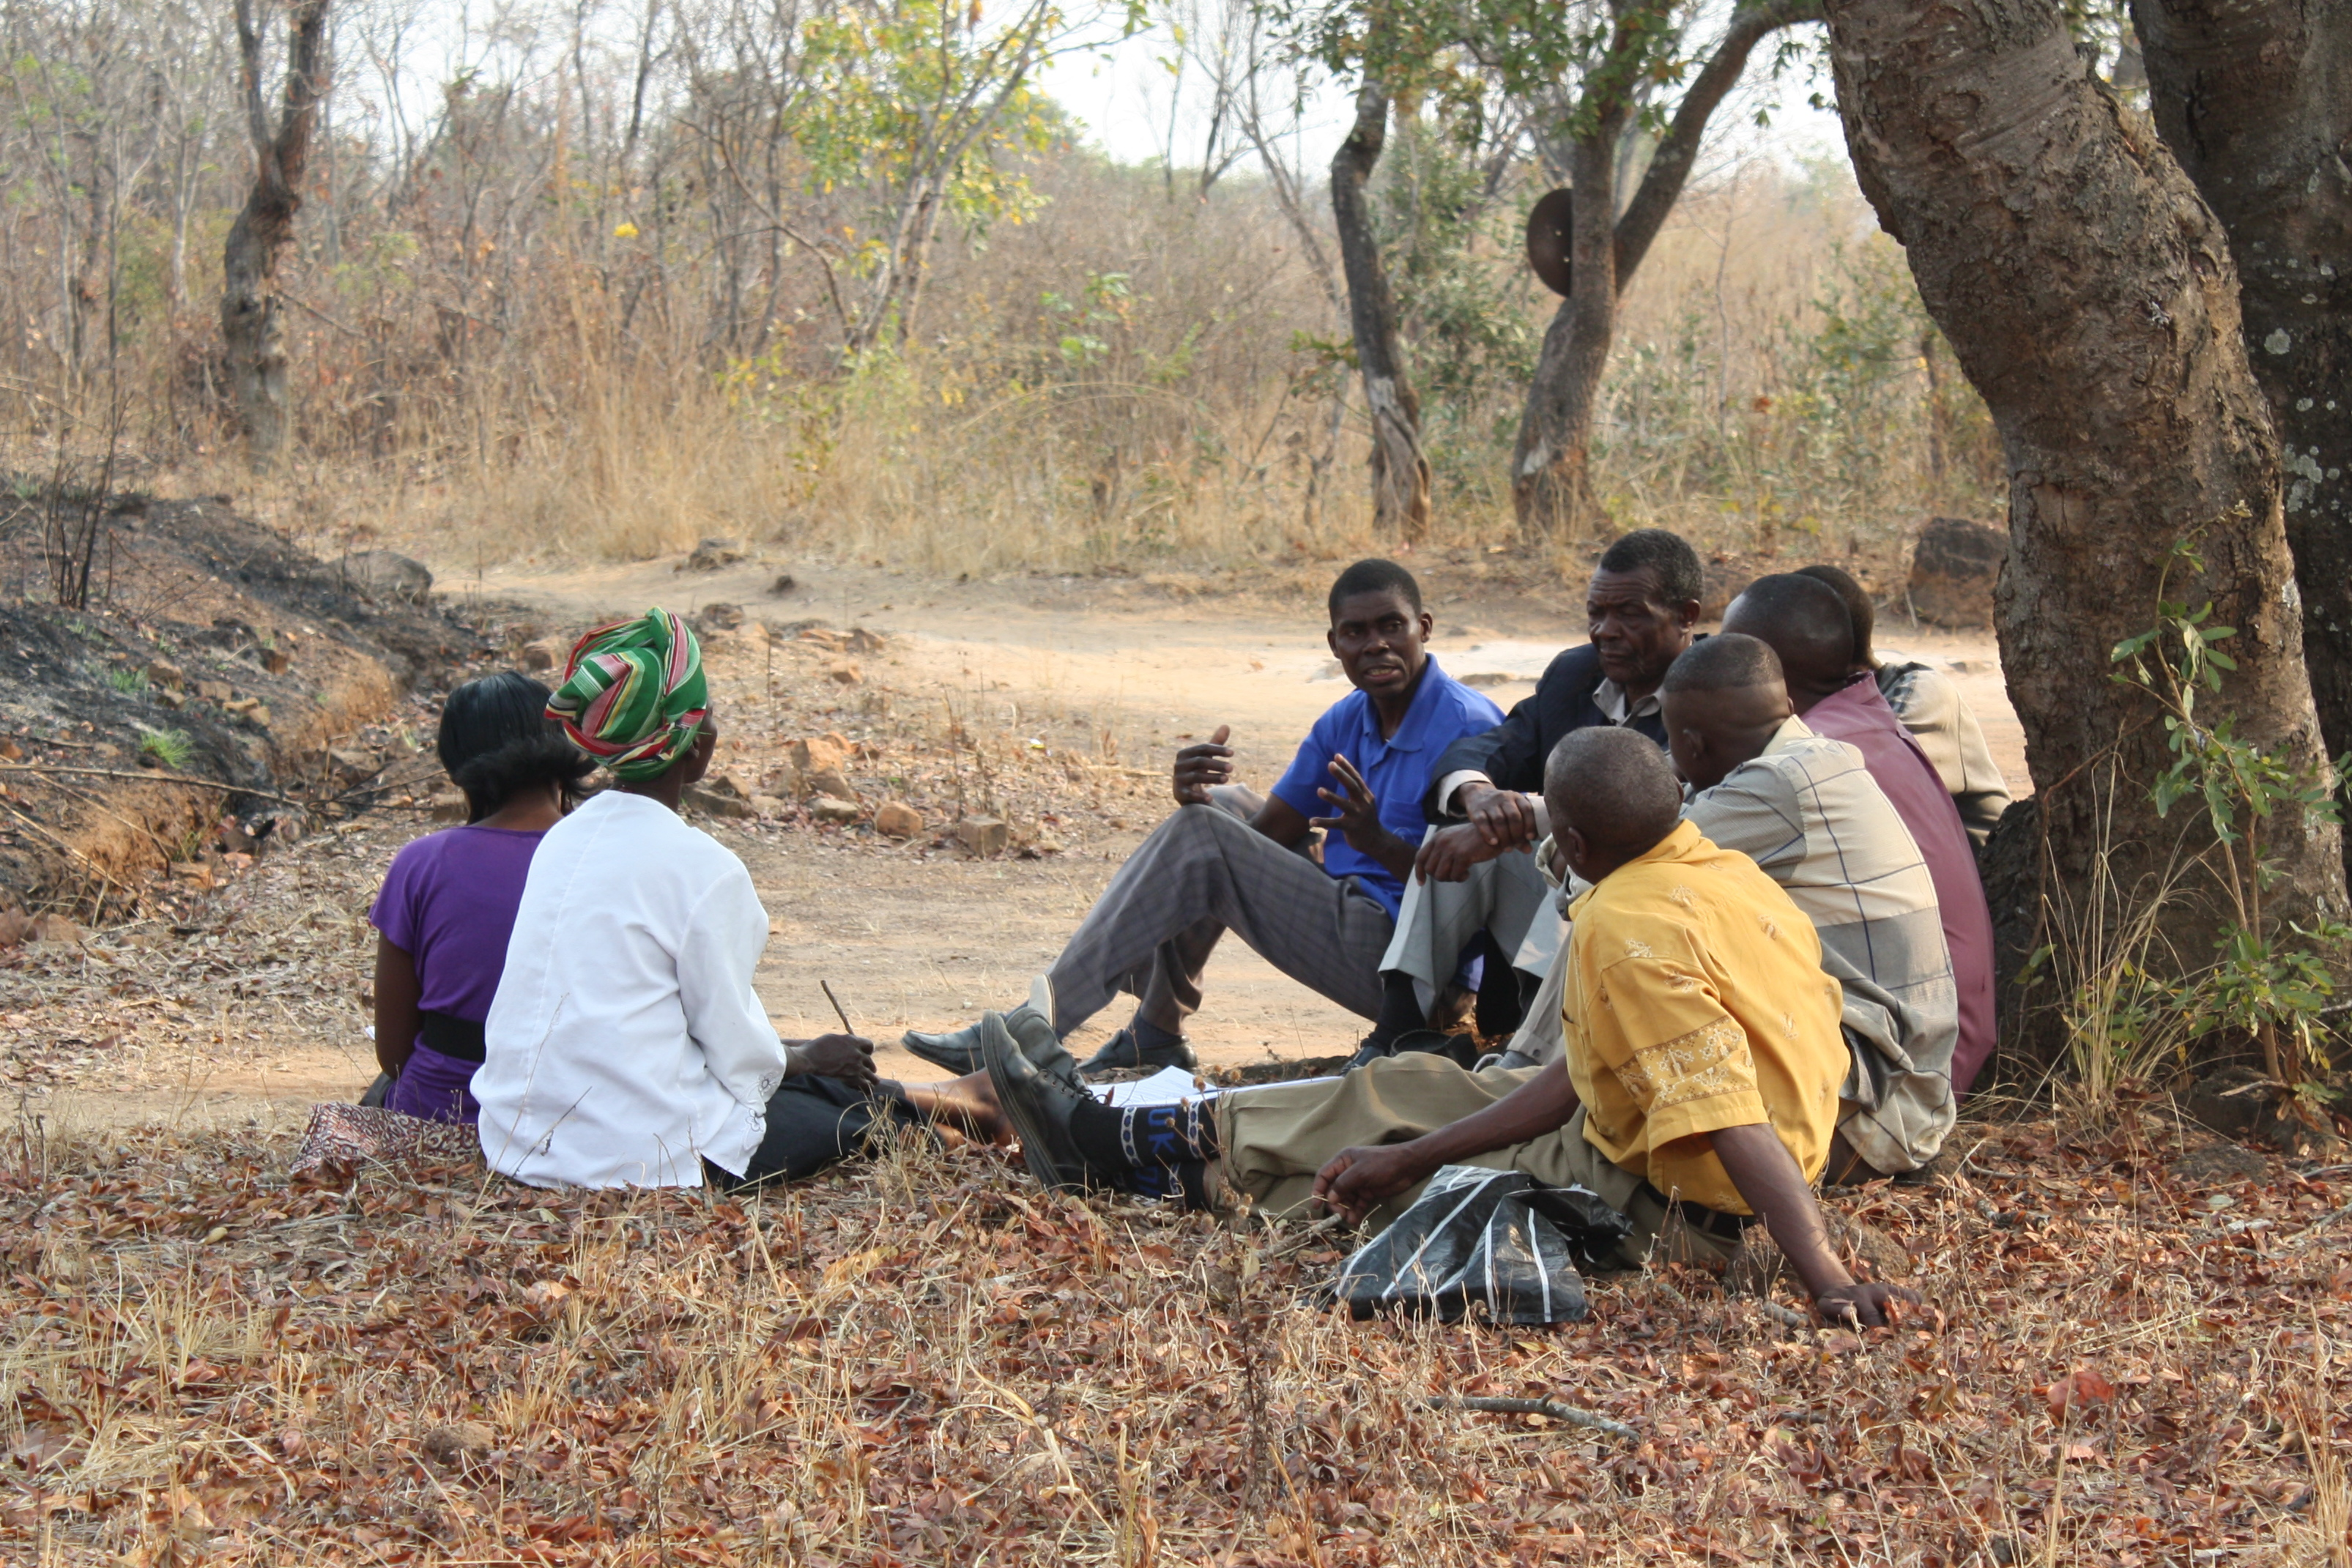 Small group dignity zambia